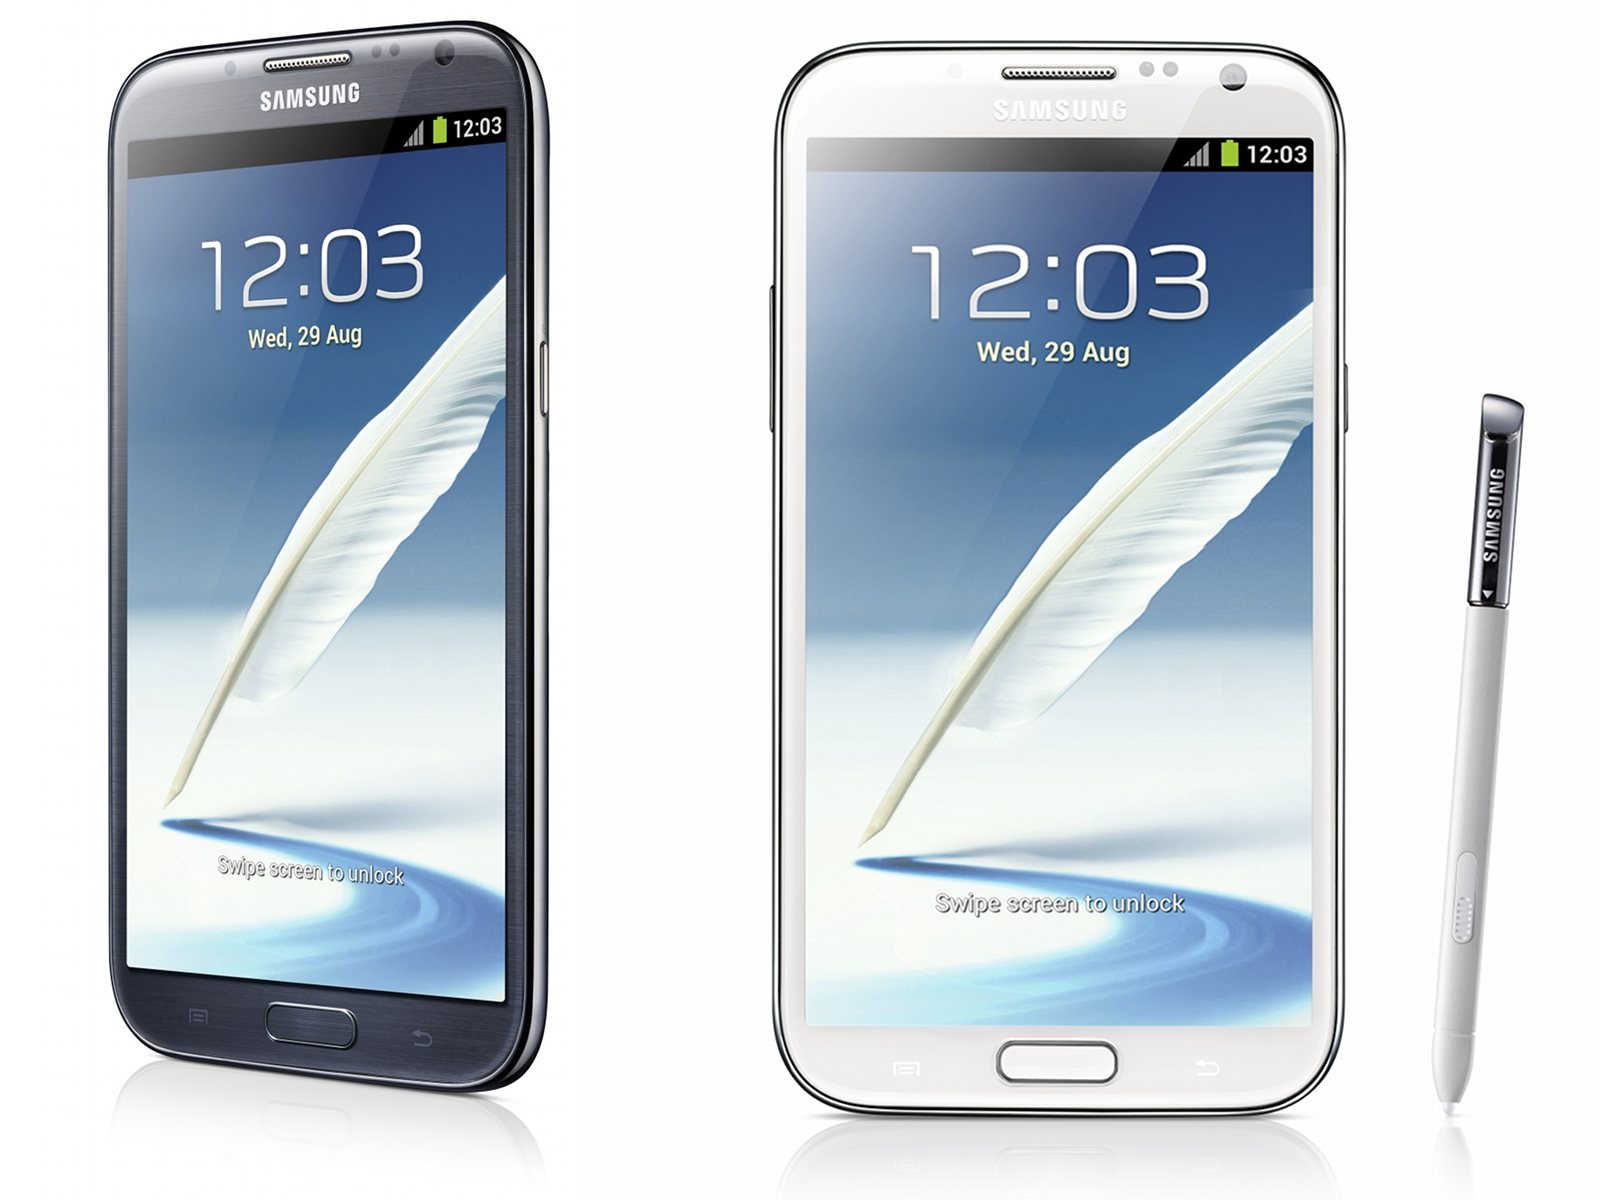 BEST PHABLET PHONE EVER SAMSUNG GALAXY NOTE 2 SMALL REVIEW ...